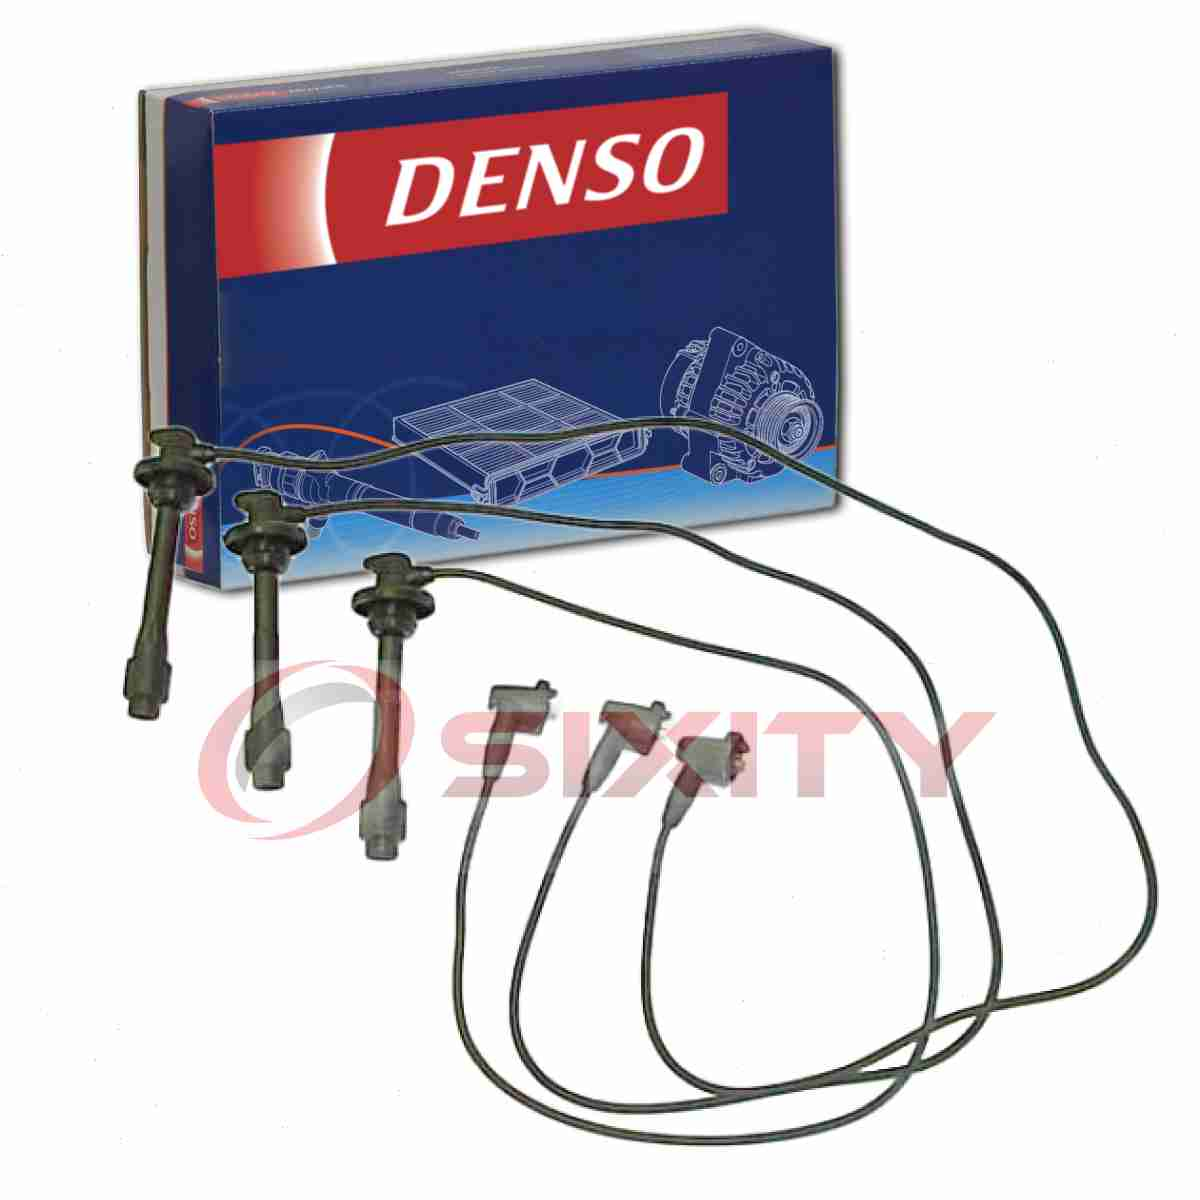 Denso Spark Plug Ignition Wires Set for Toyota Sienna 3.0L V6 1998-2000 Tune wh